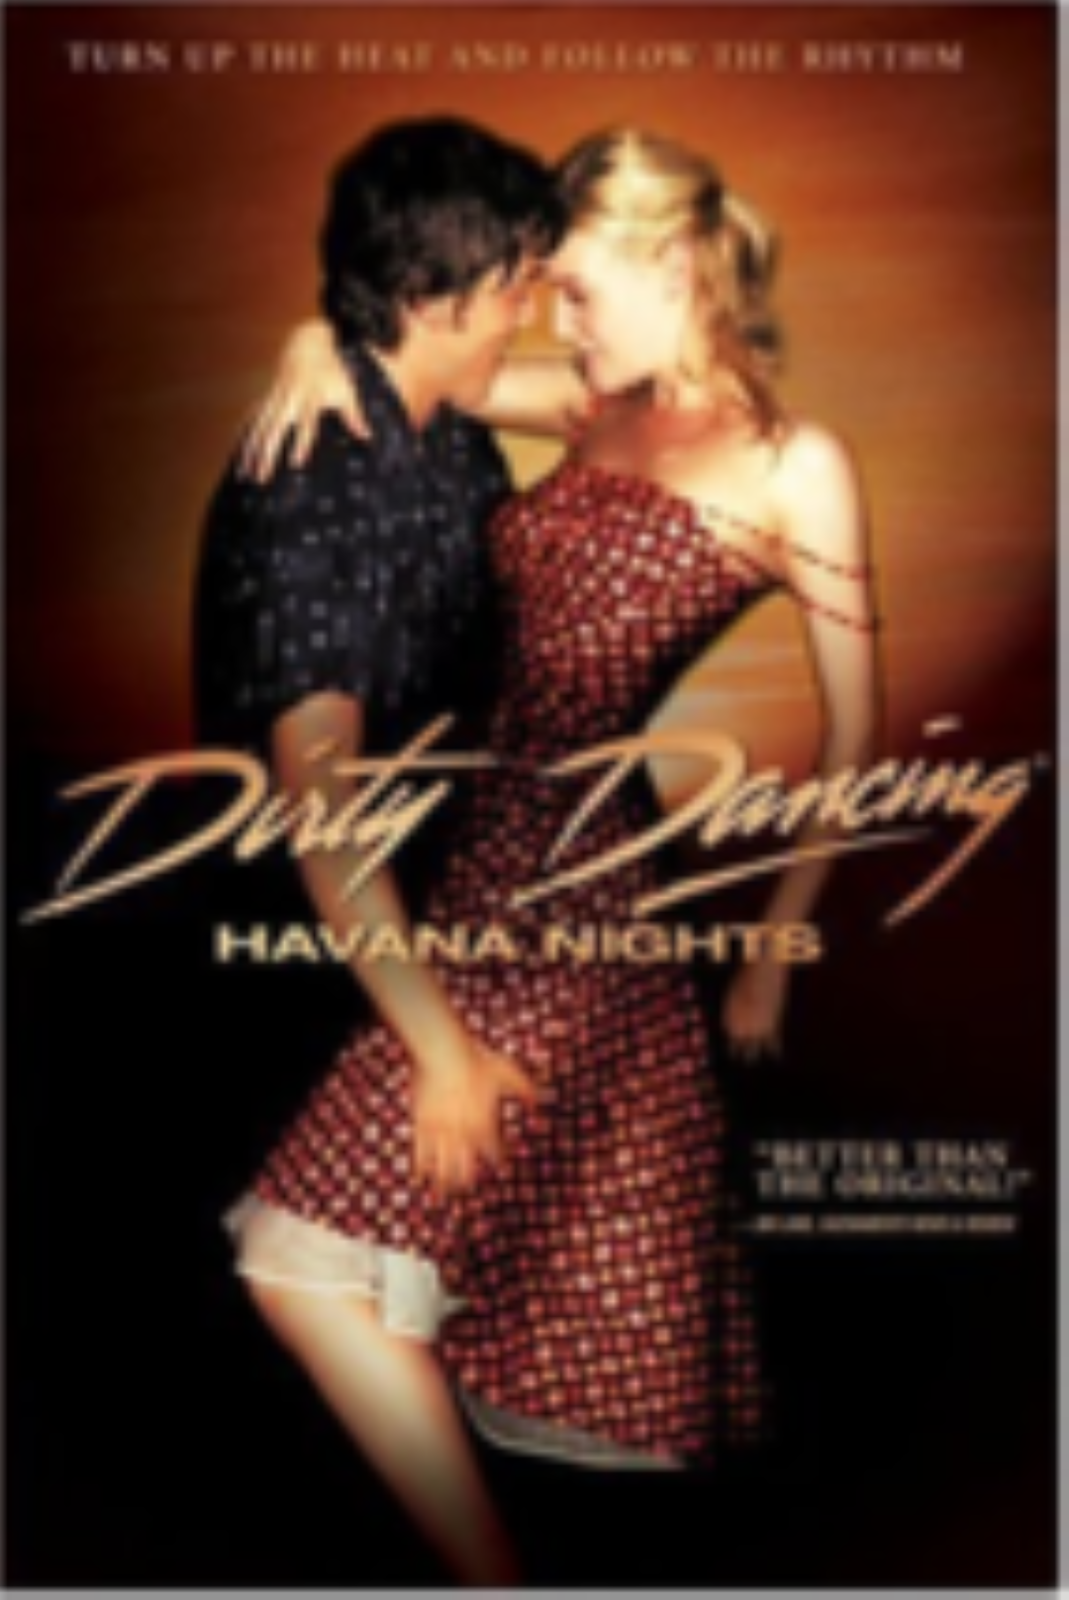 Dirty Dancing - Havana Nights Dvd